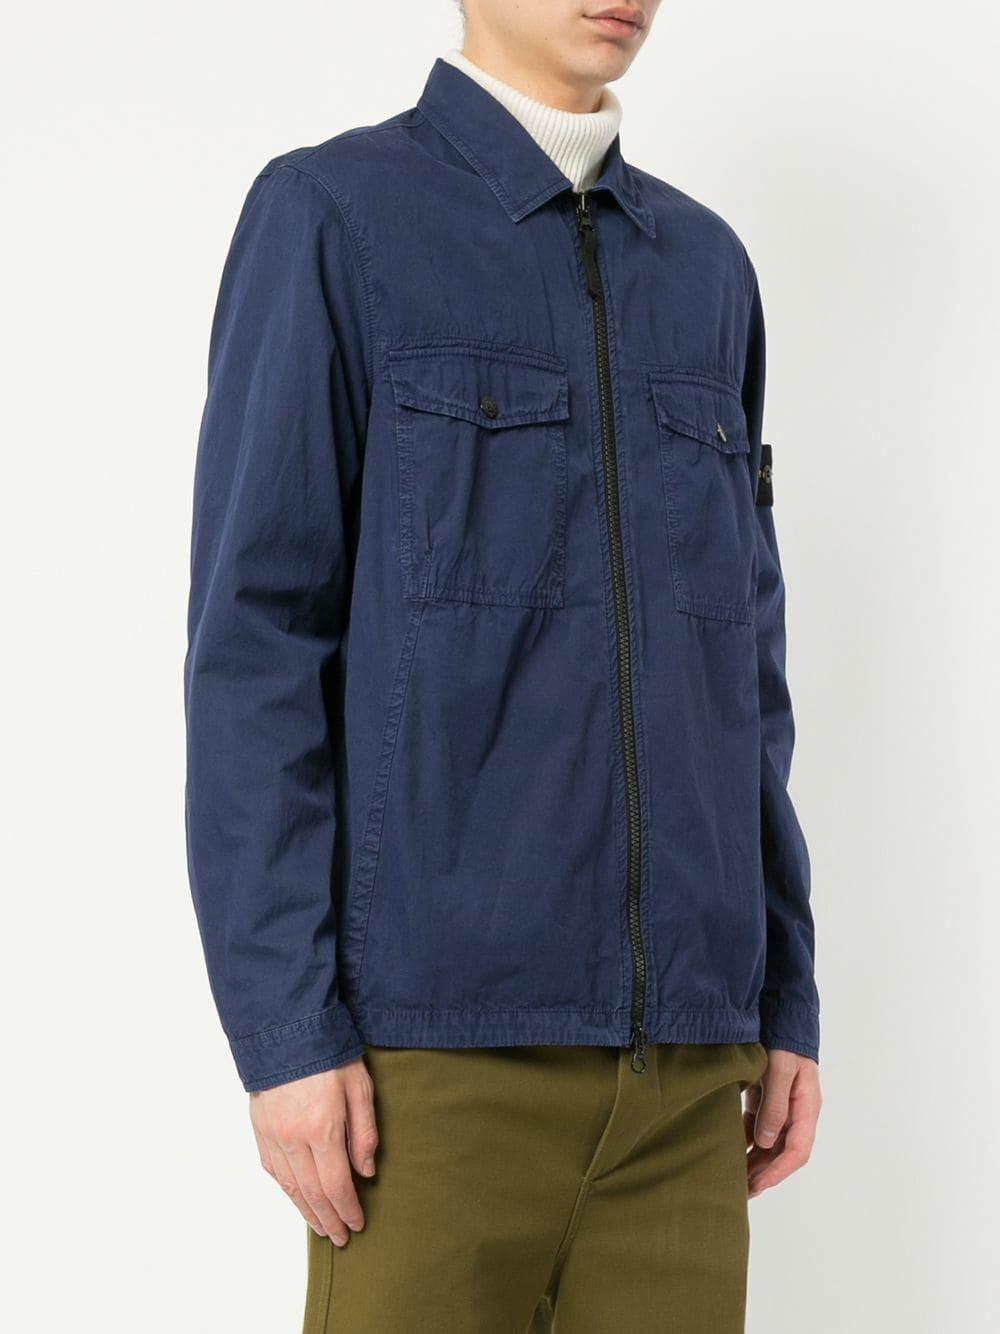 Stone Island Cotton 107wn Shirt Jacket in Blue for Men - Lyst